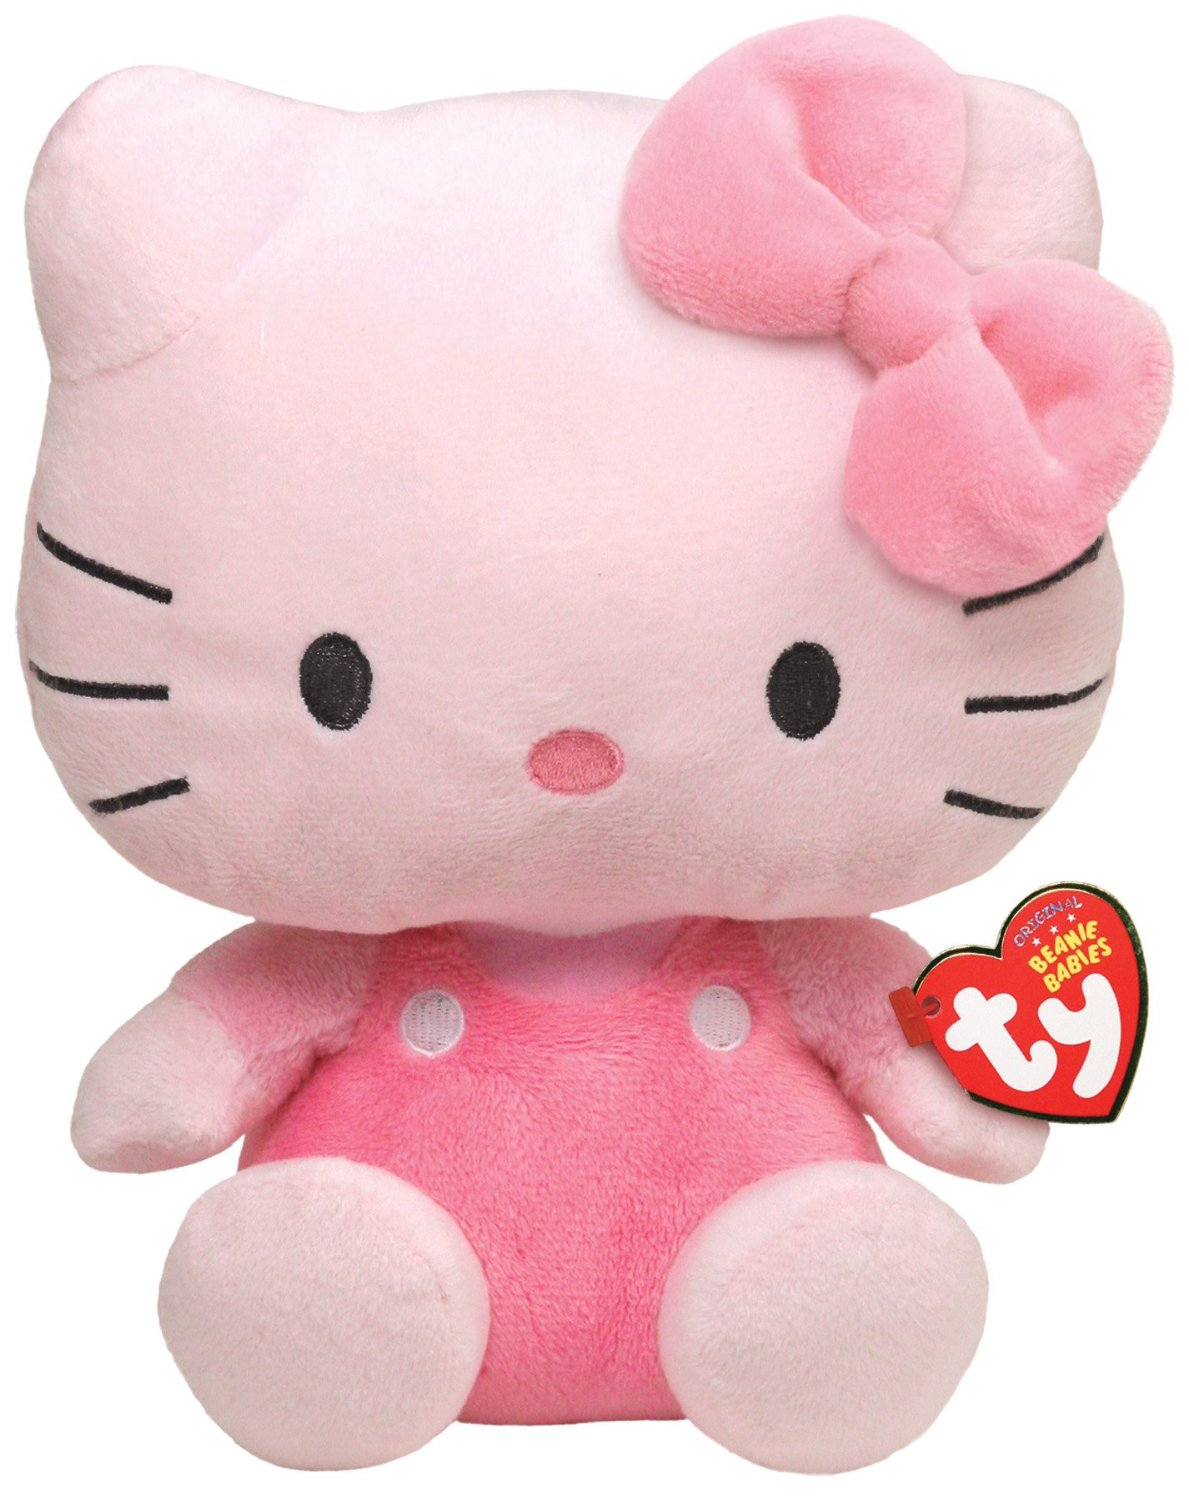 adc5bf267ef Get Quotations · TY Beanie Baby Hello Kitty - All Pink